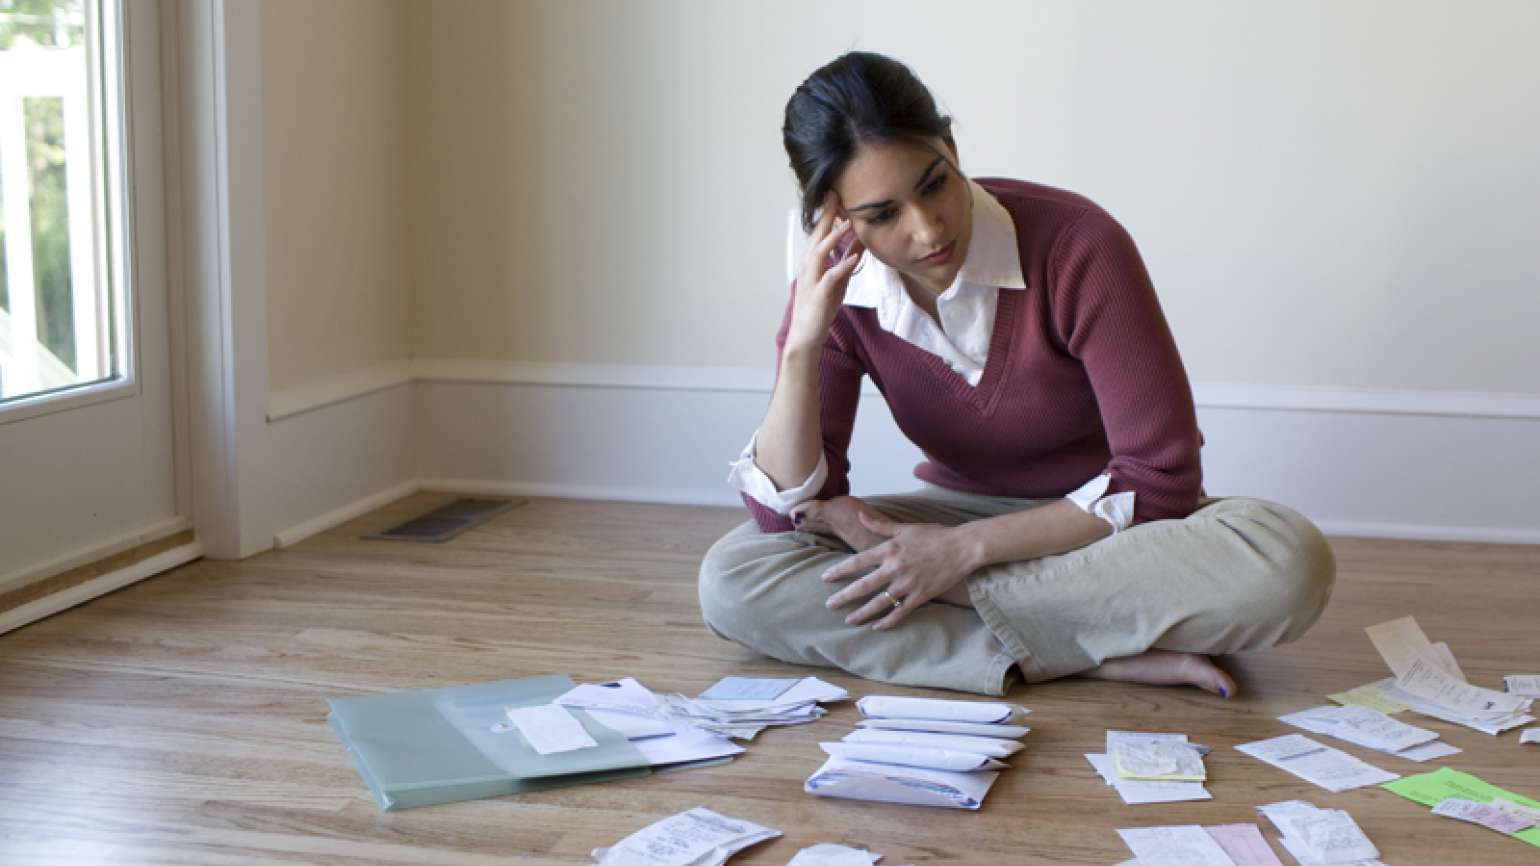 A woman sits on the floor, worried, while surrounded by unpaid bills.